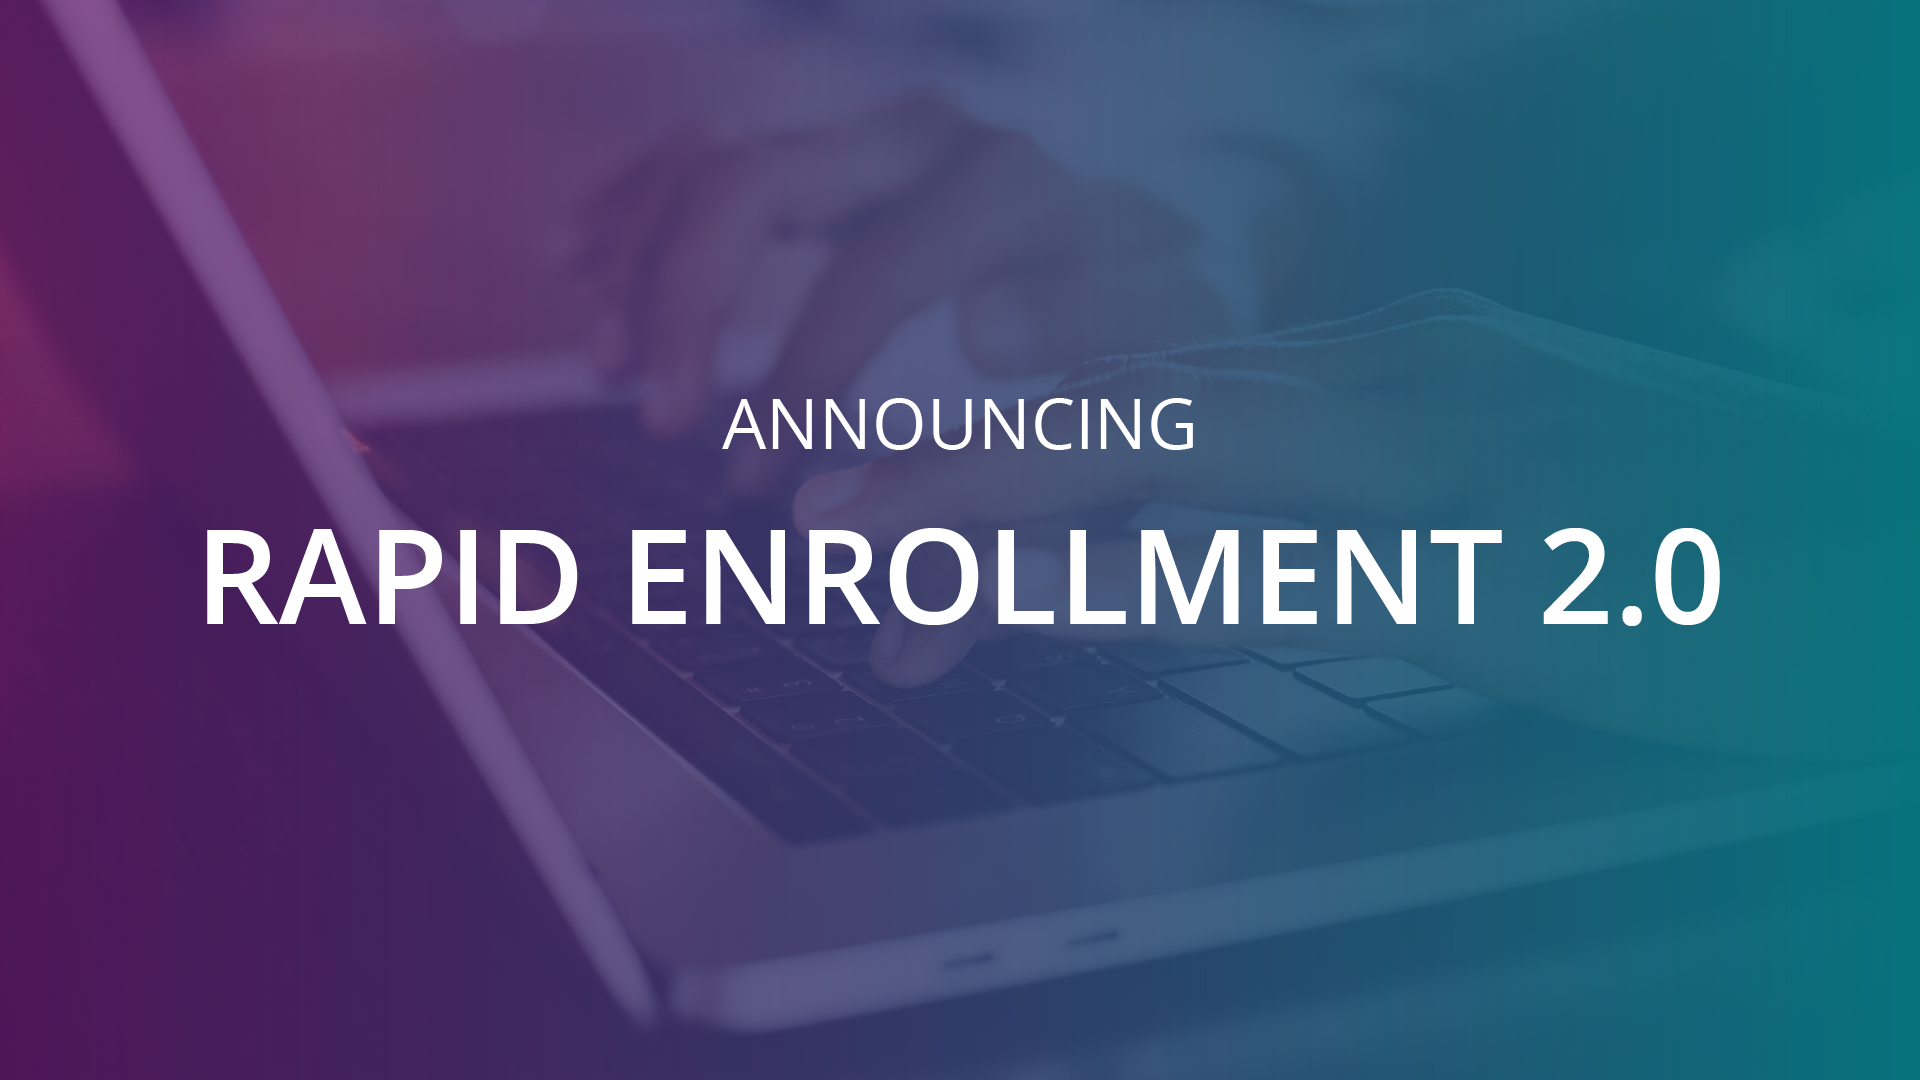 Rapid Enrollment 2.0